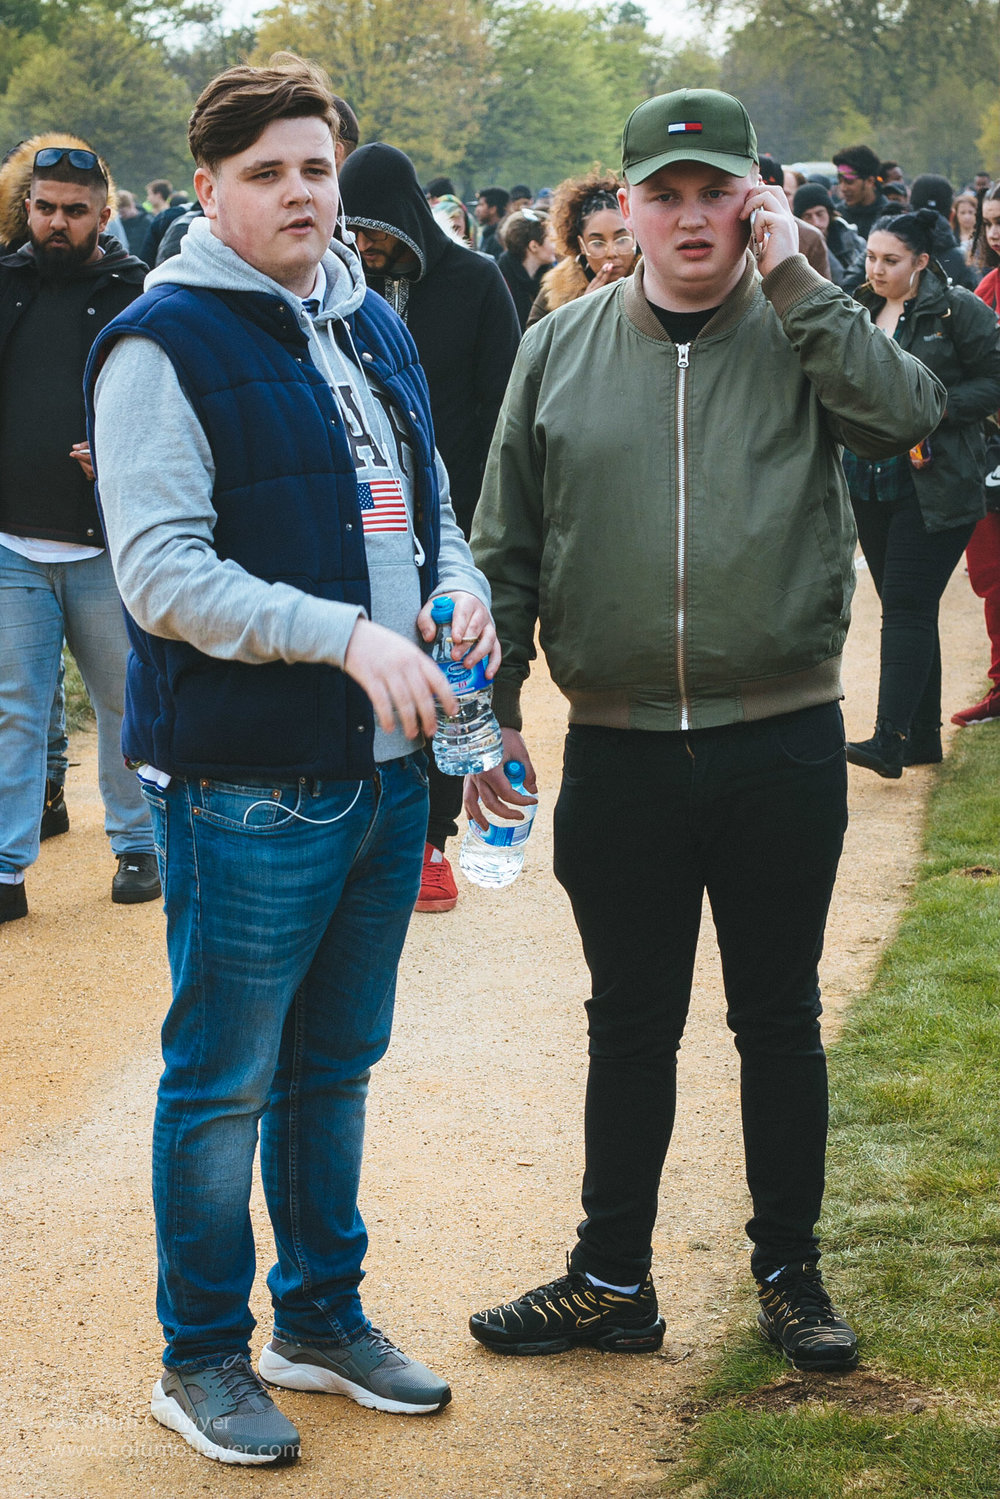 420 Hyde Park London - Apr 2017 - IMG_1608.jpg